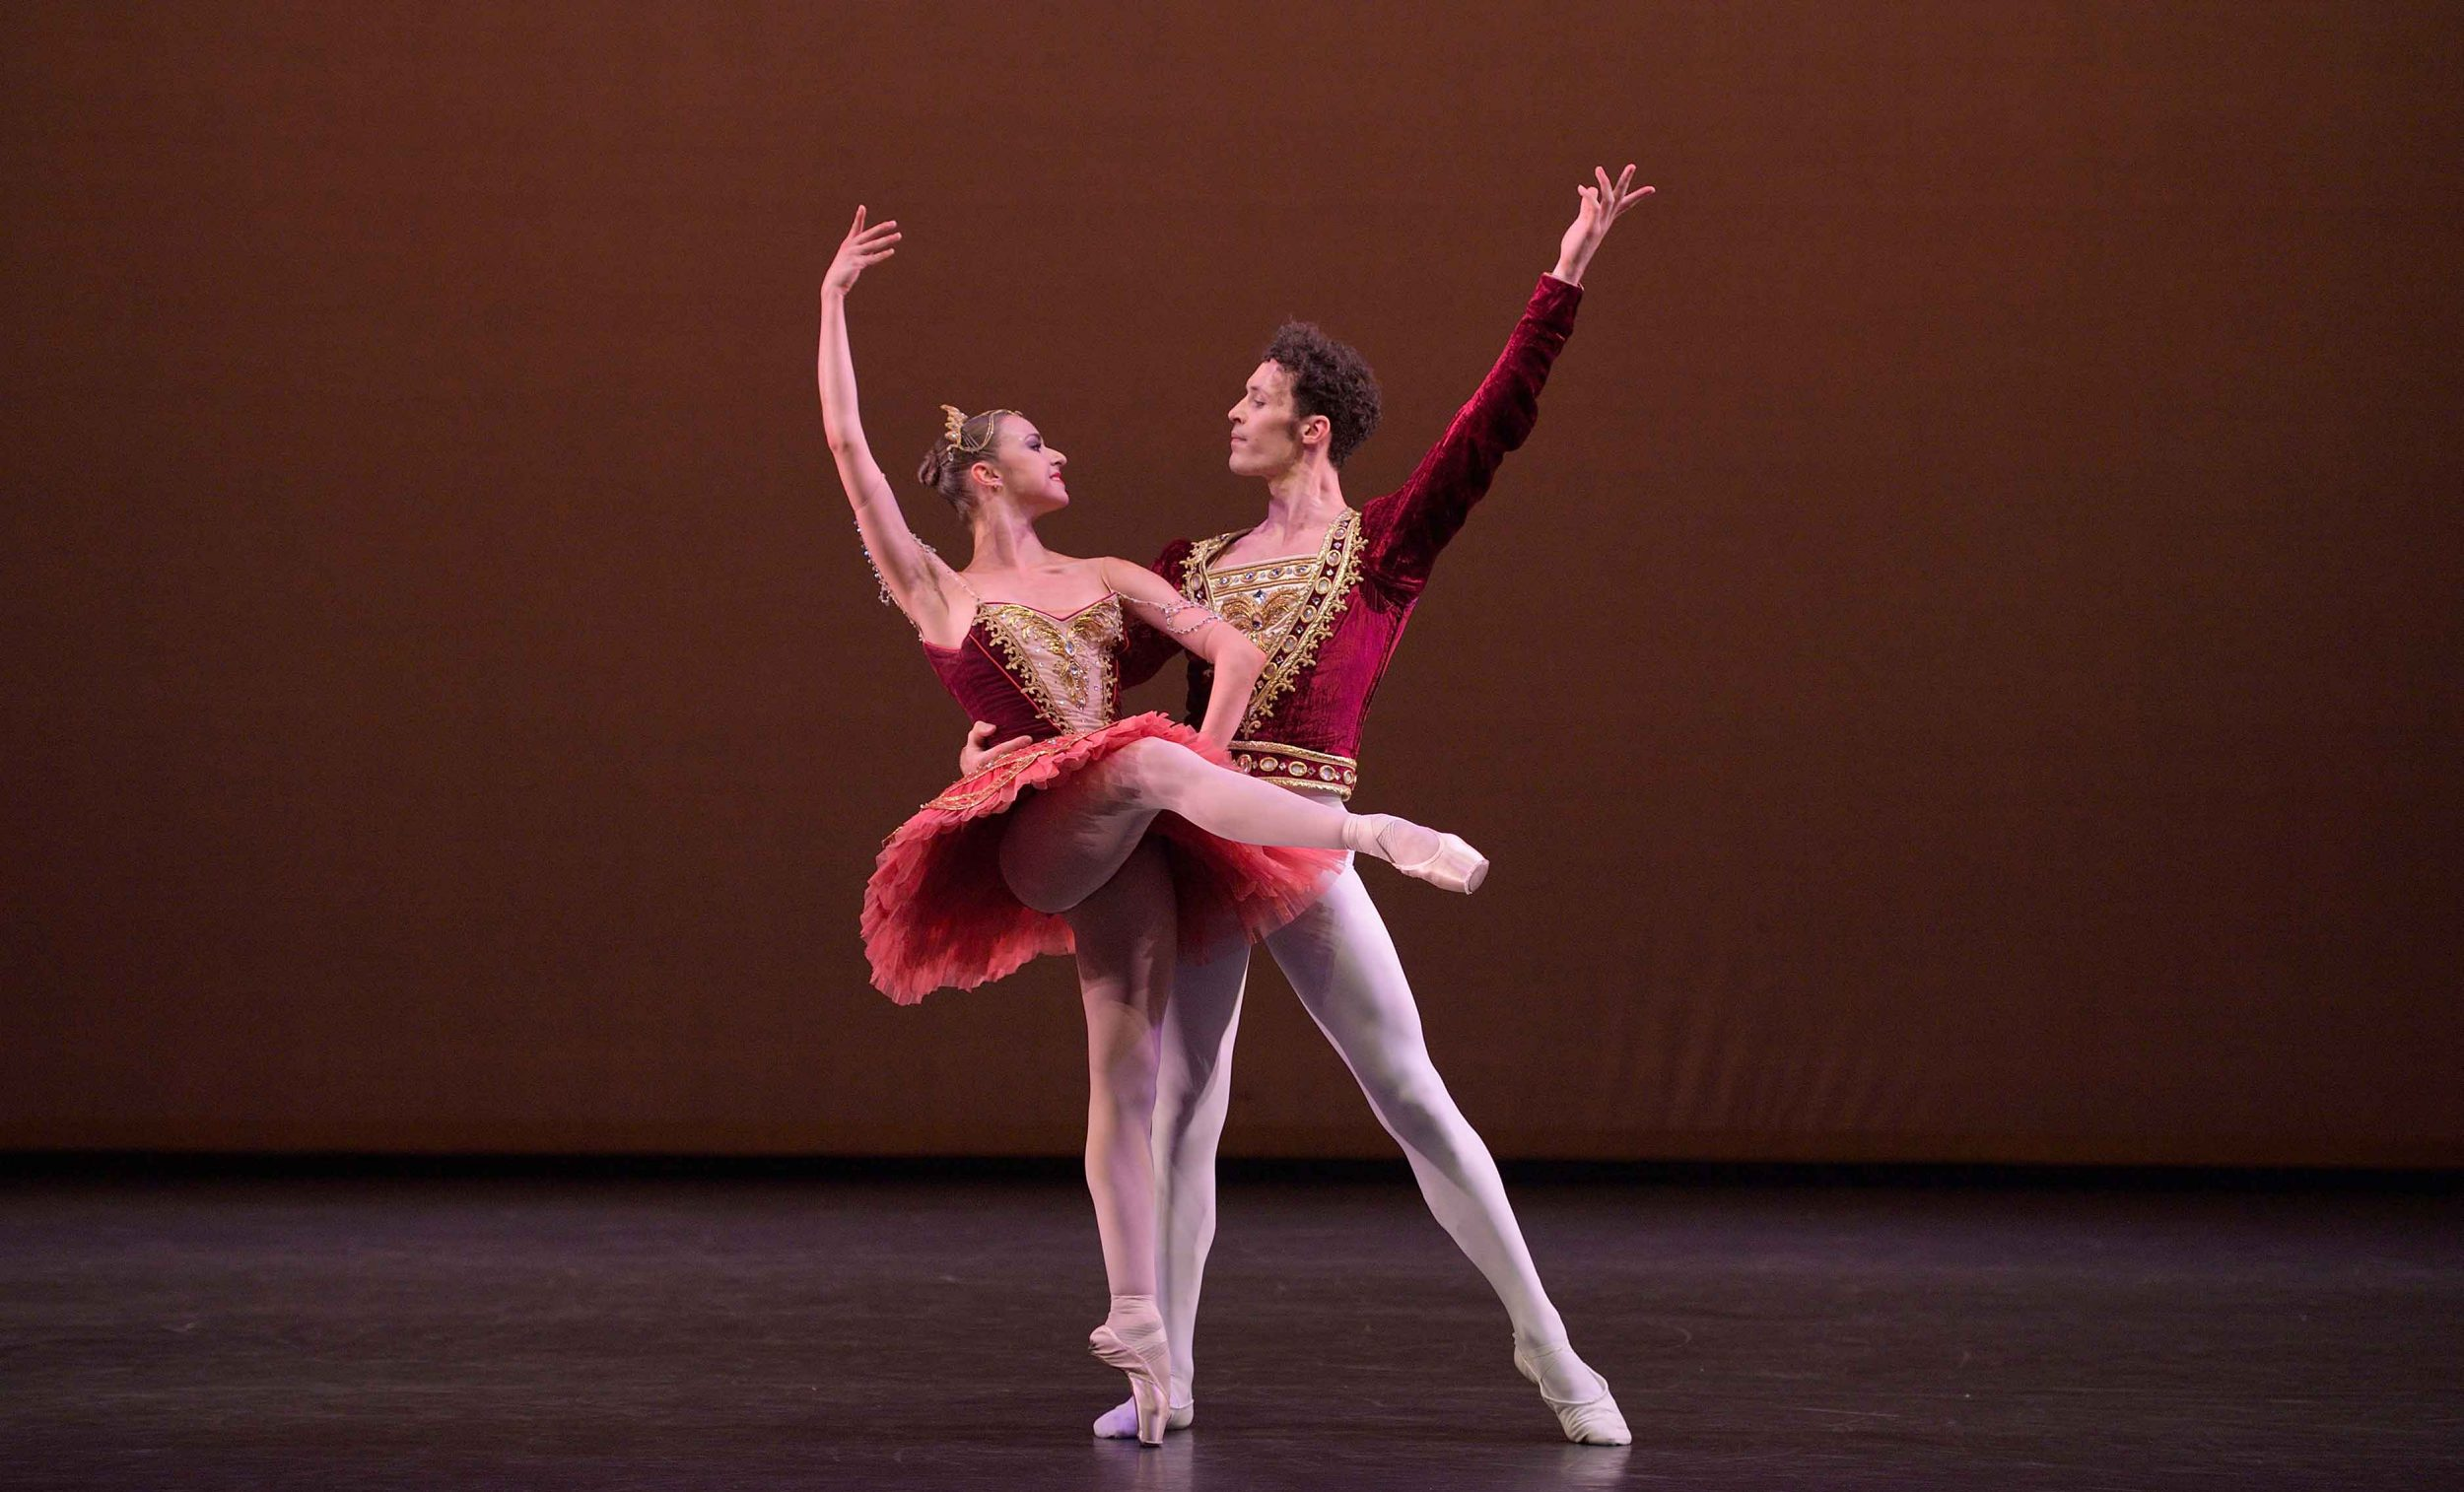 Isabelle-Brouwers-and-Emilio-Pavan-performing-Paquita-©-Laurent-Liotardo--(4)